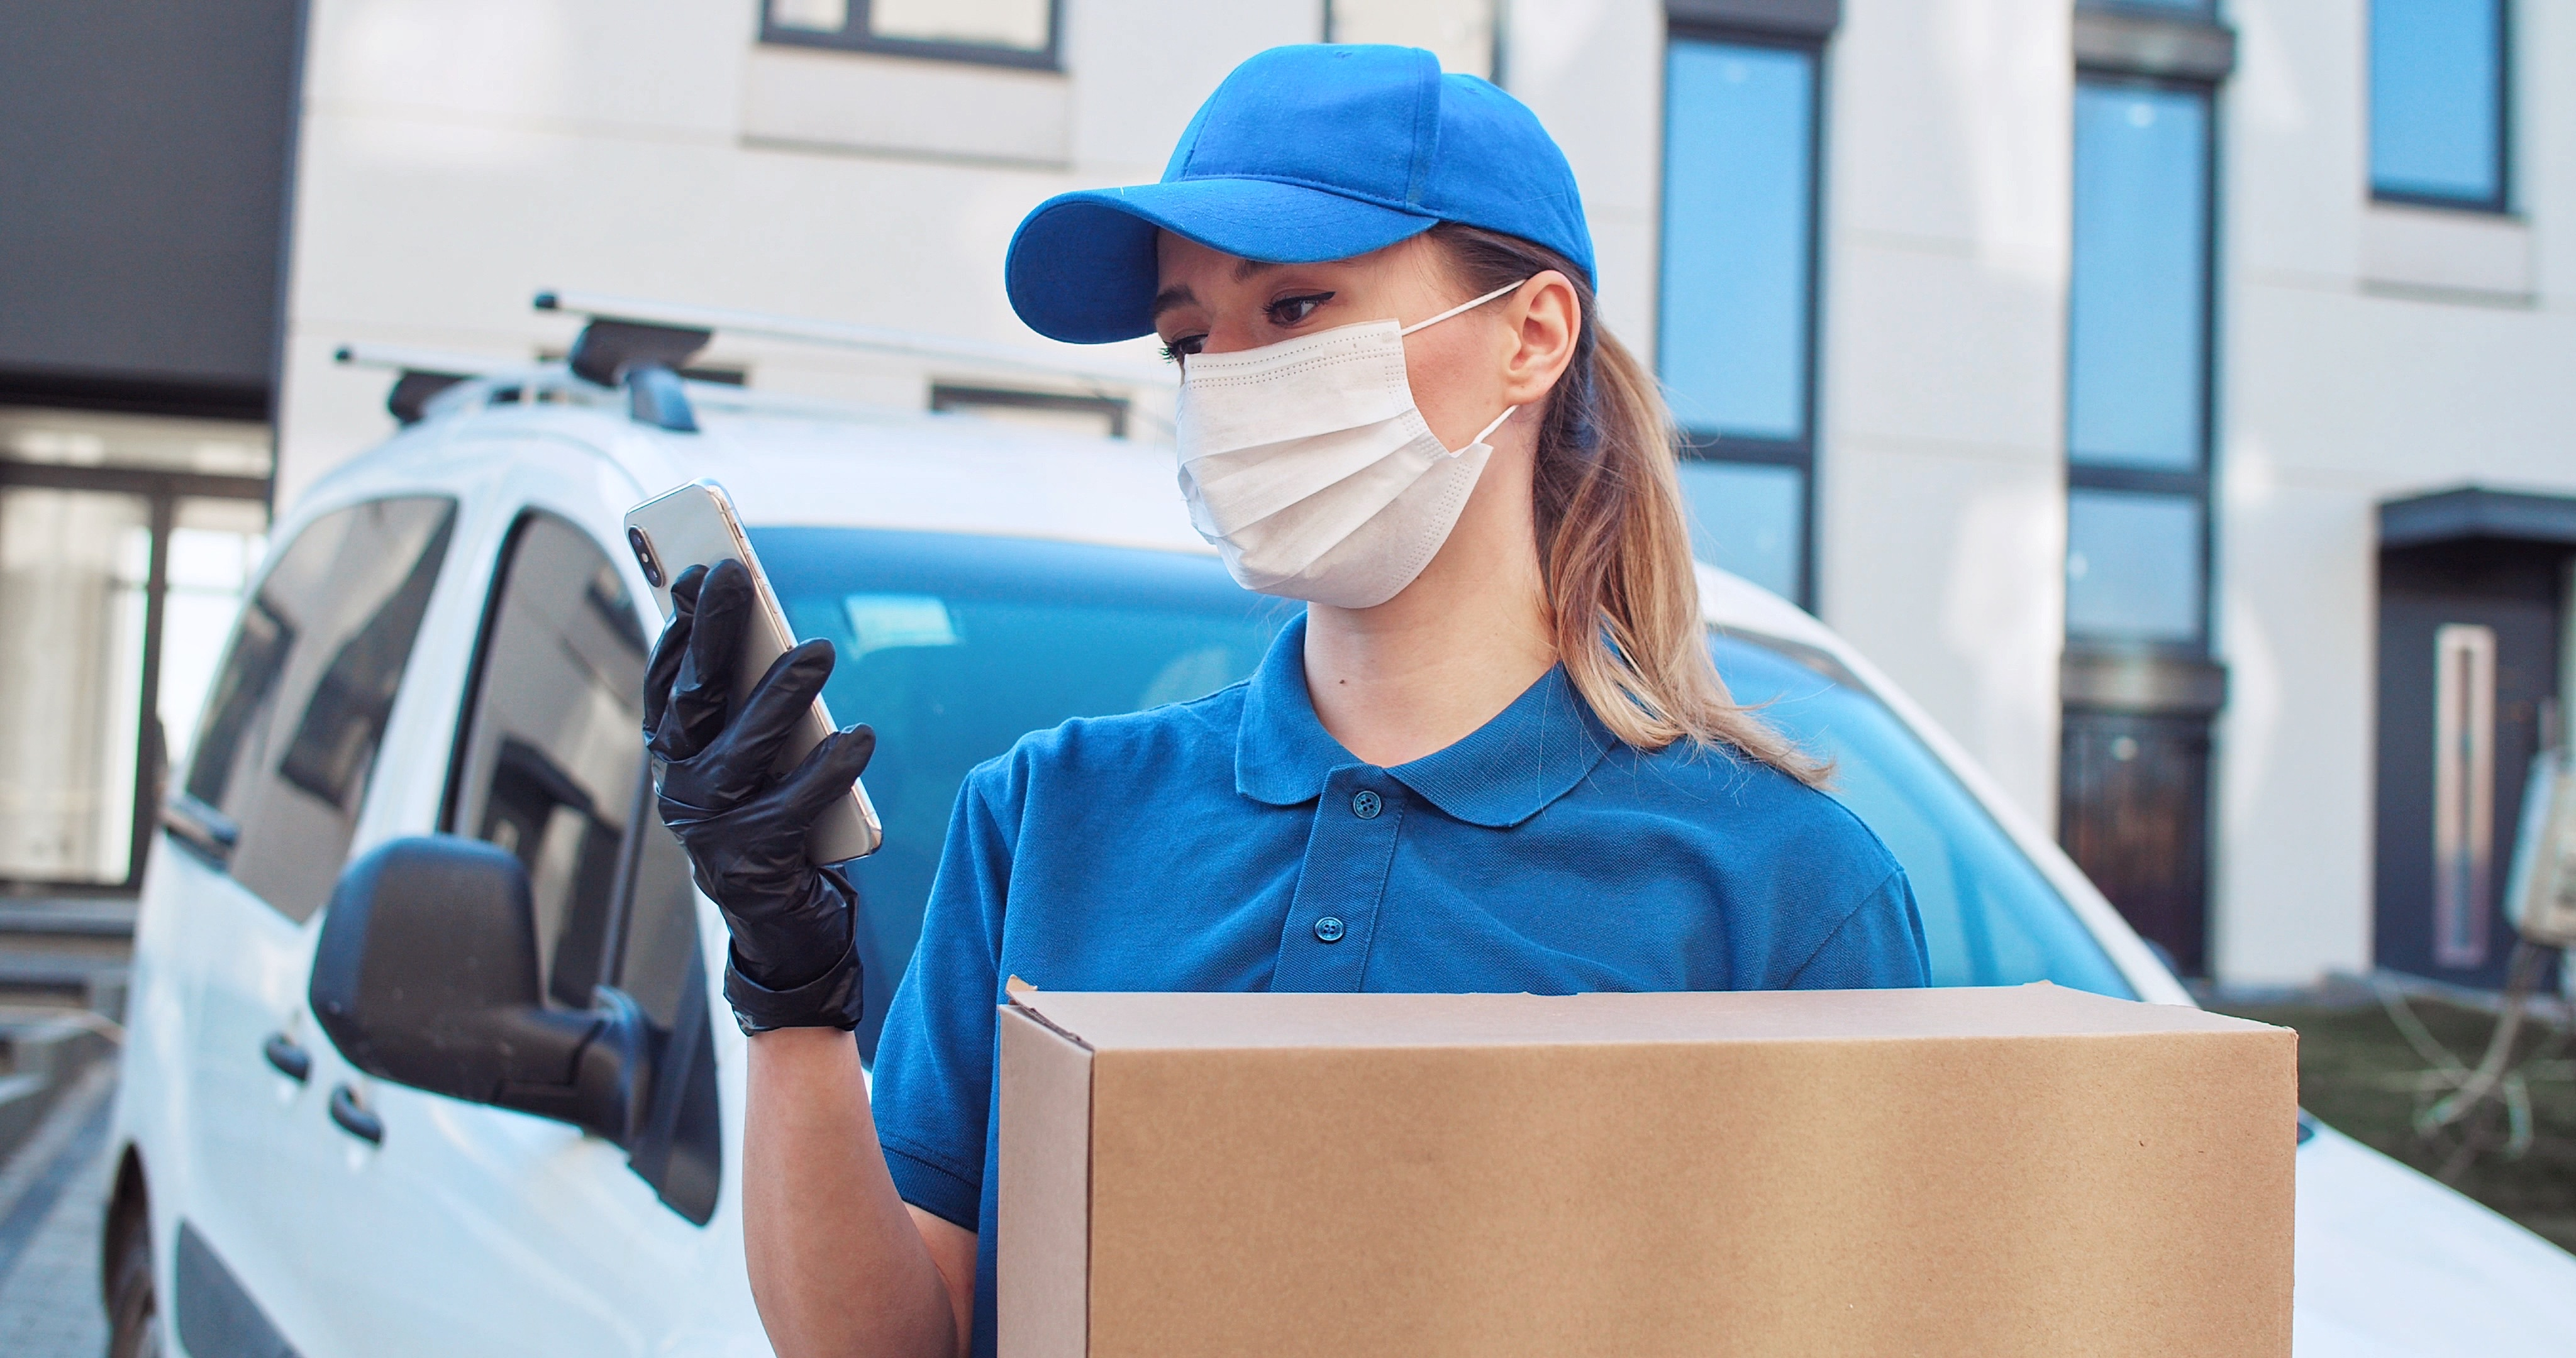 close-up-portrait-woman-package-delivery-courier-person-giving-package-wearing-blue-uniform-giving_t20_0X81WV